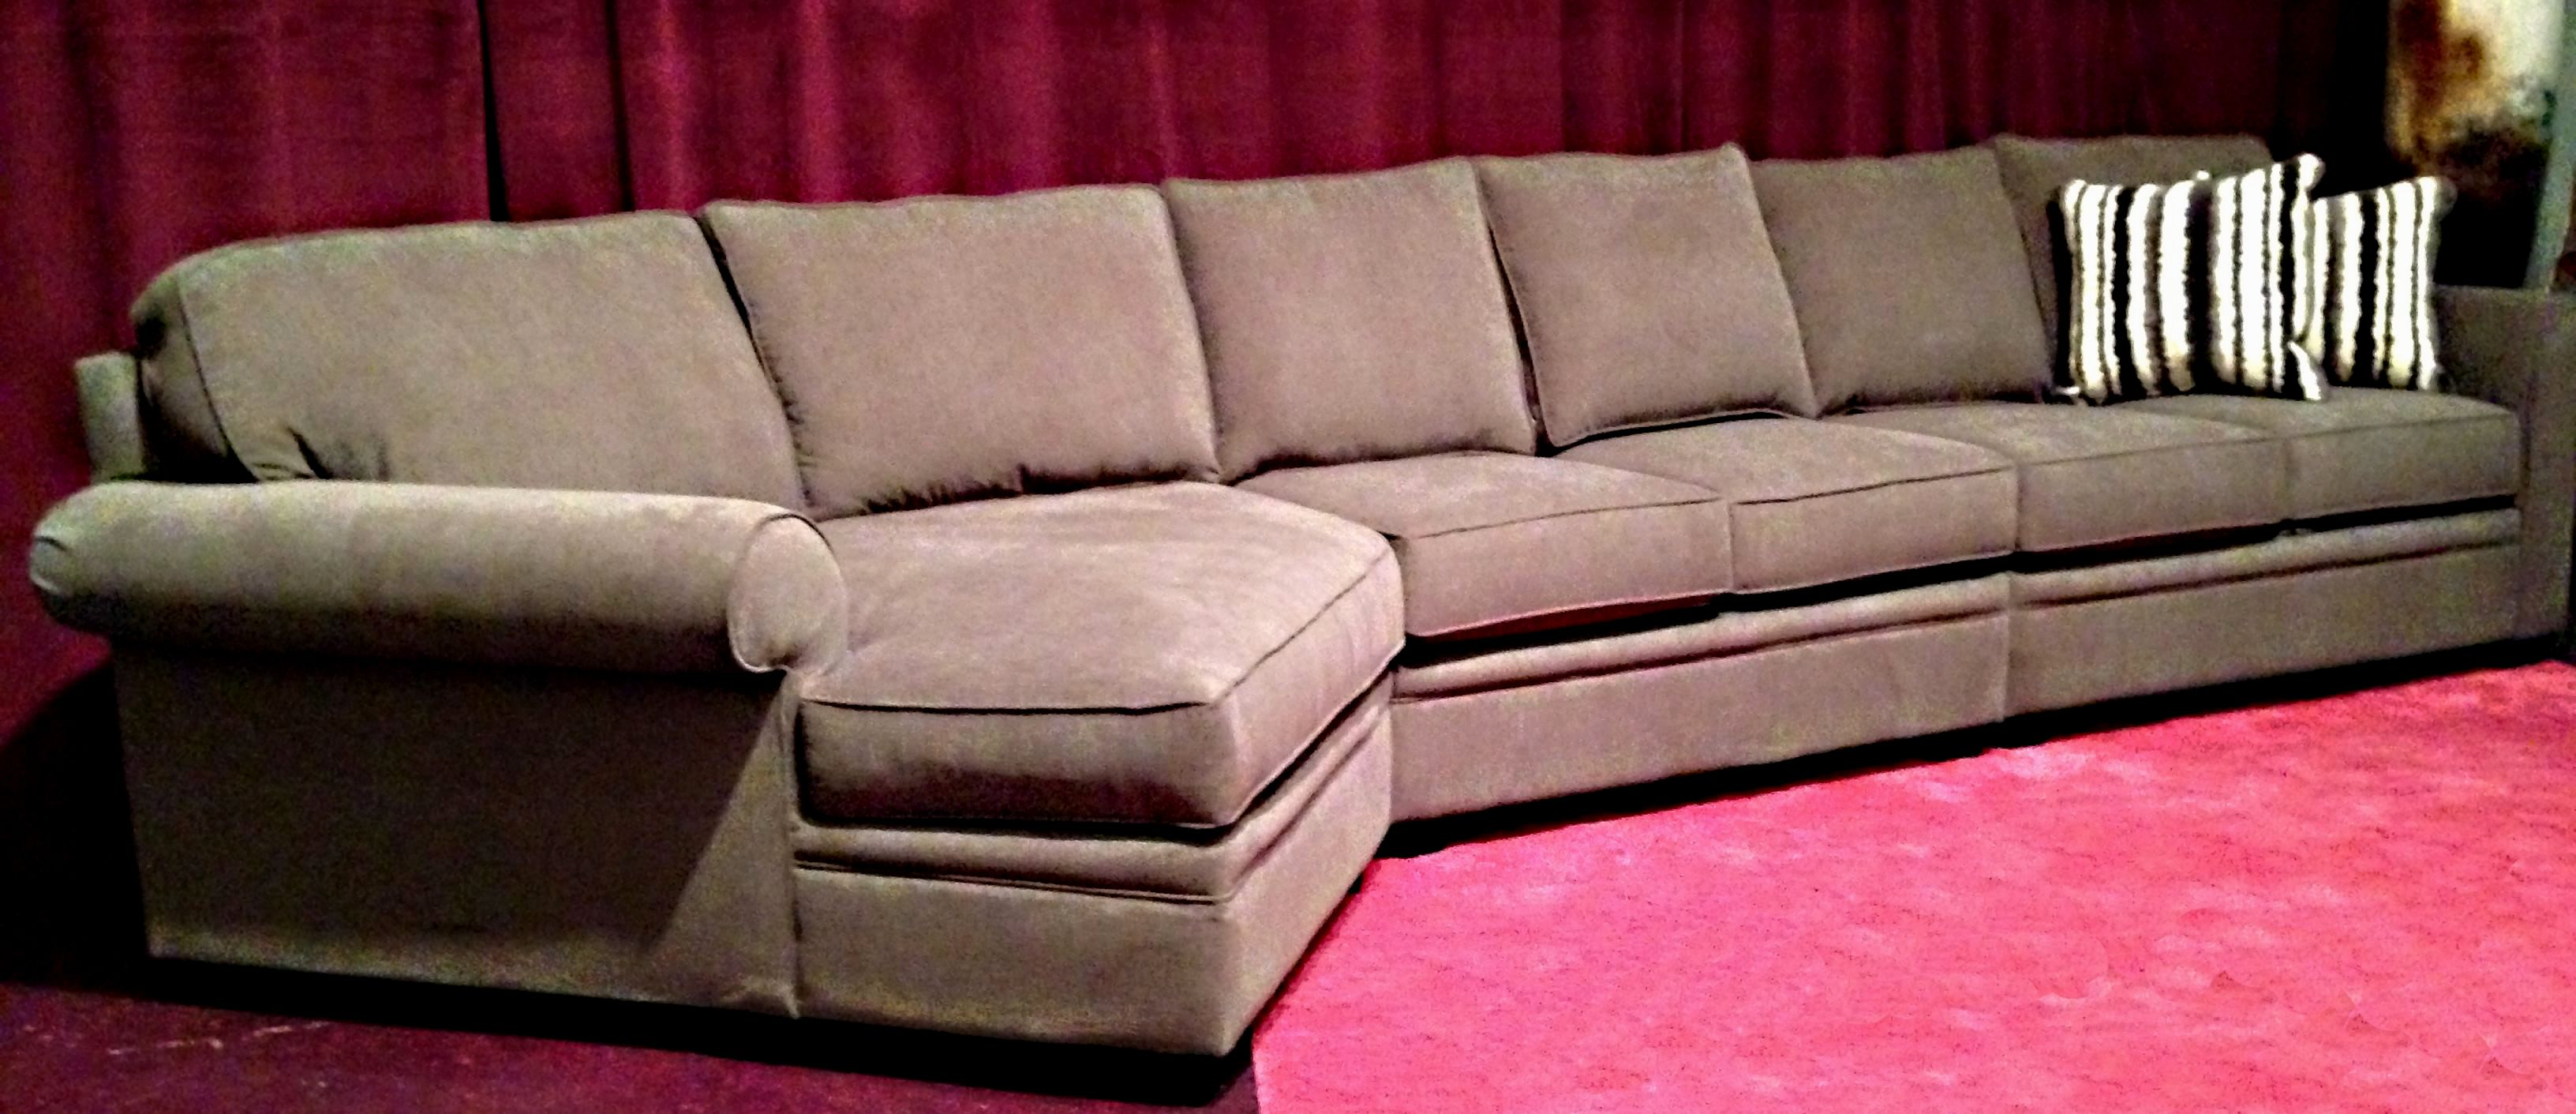 amazing sectional sofa with sleeper design-Modern Sectional sofa with Sleeper Concept